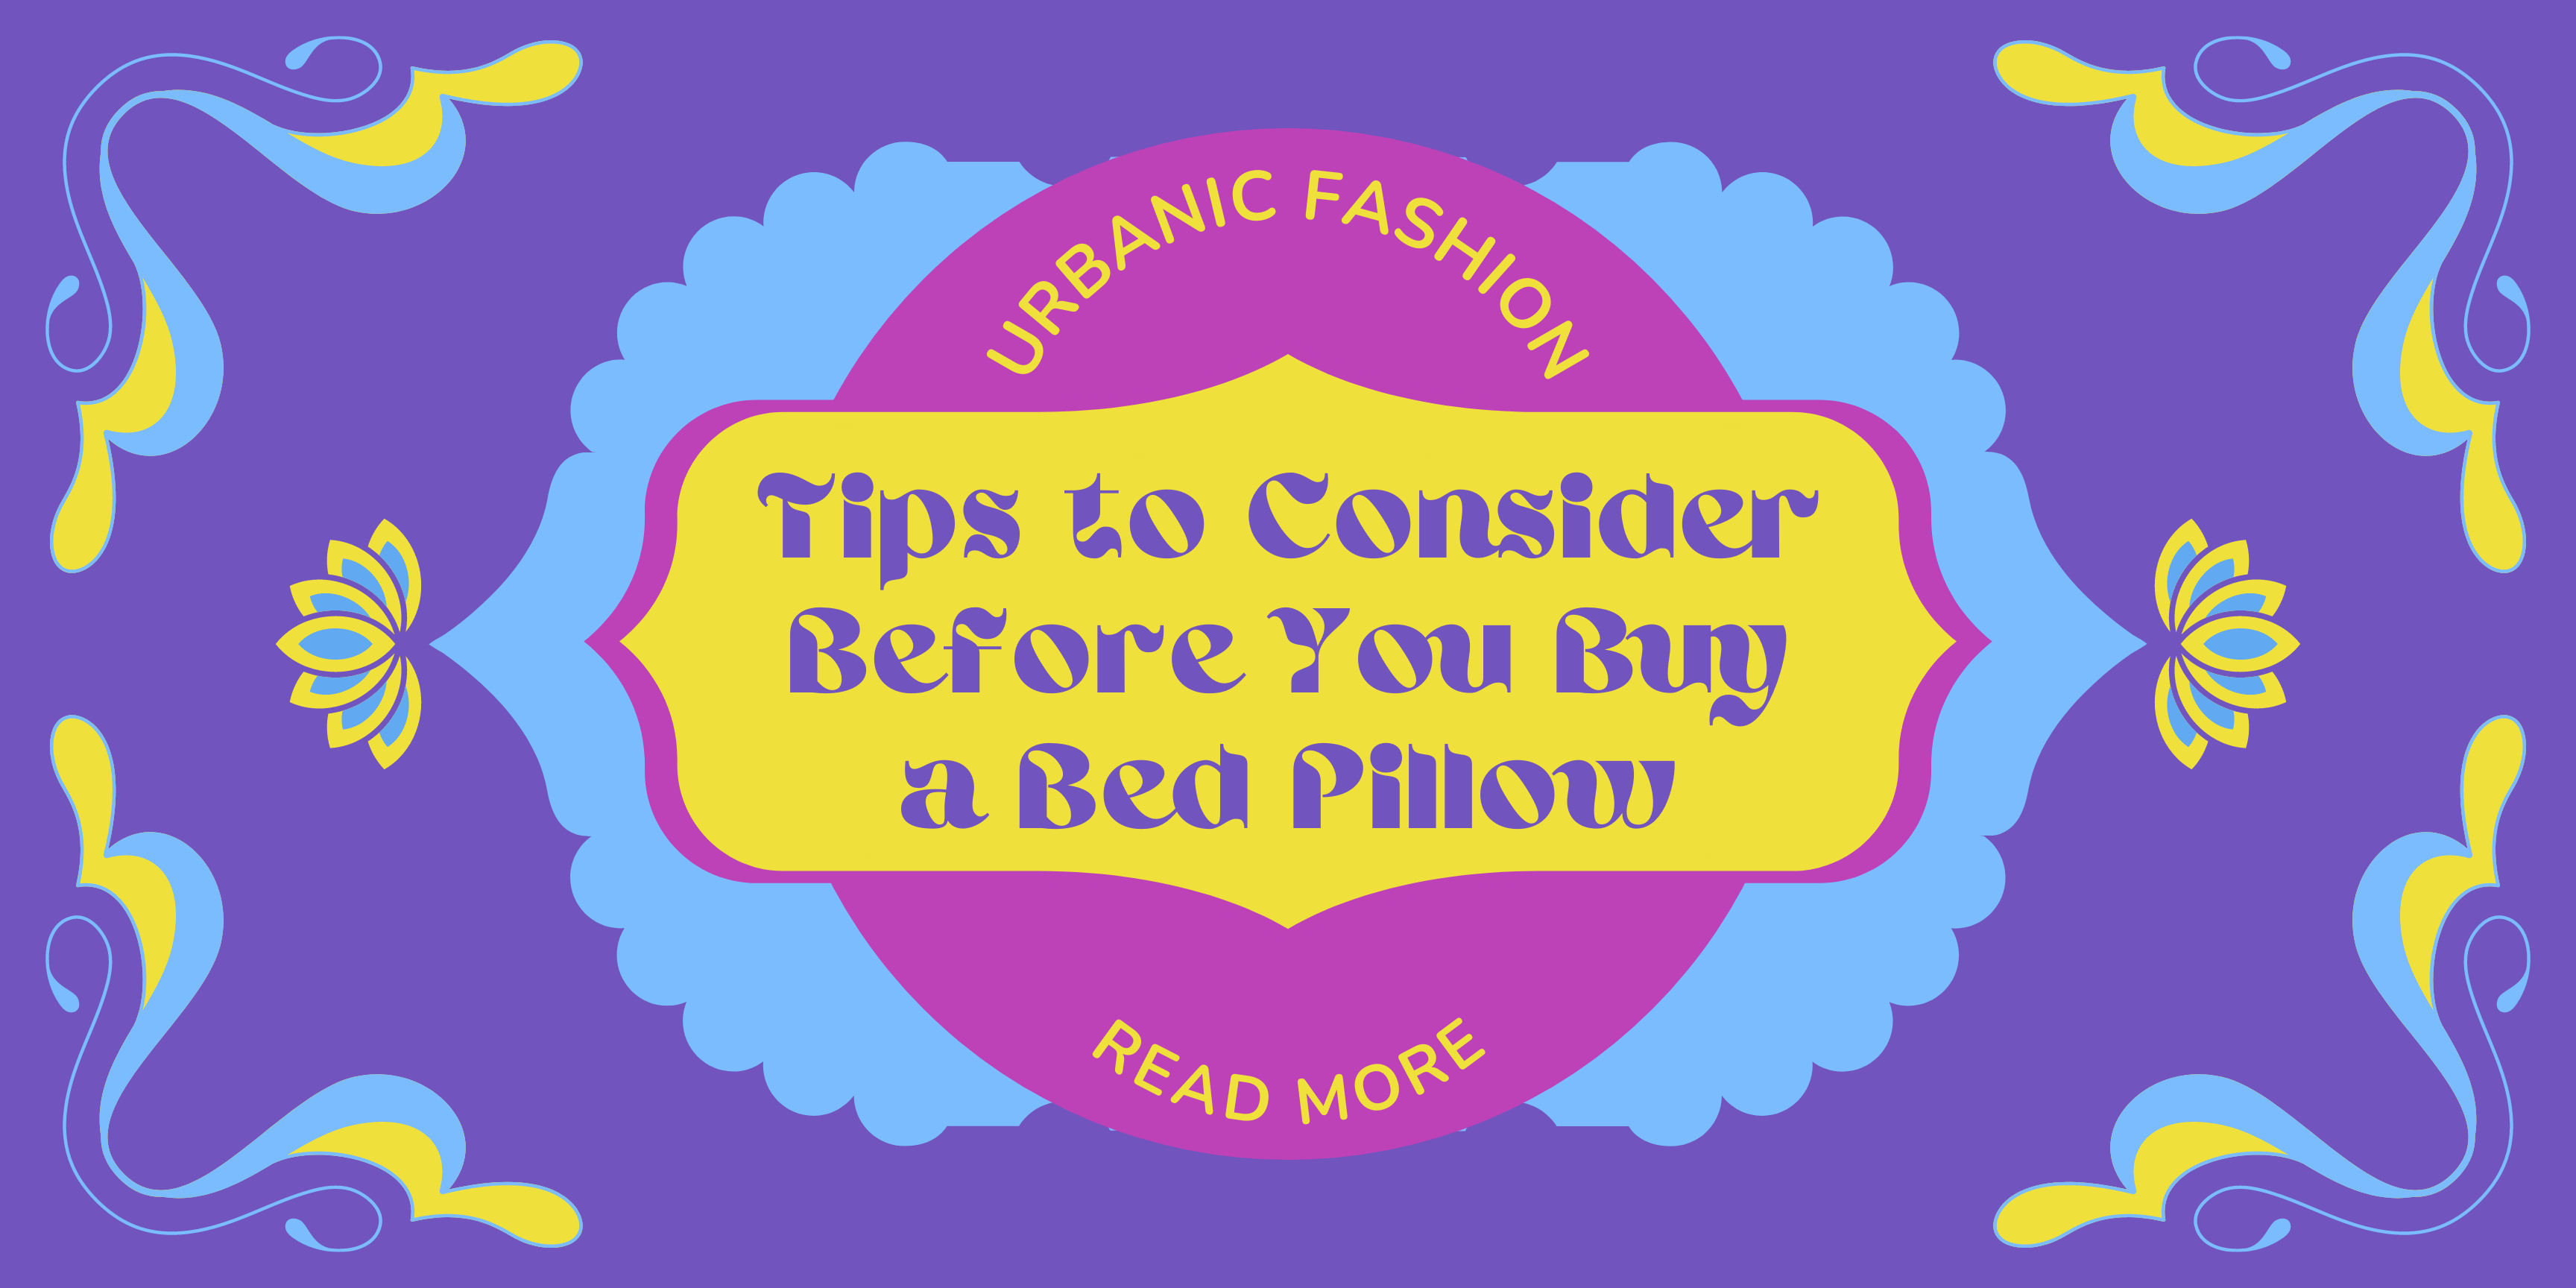 Tips-to-Consider-Before-You-Buy-a-Bed-Pillow